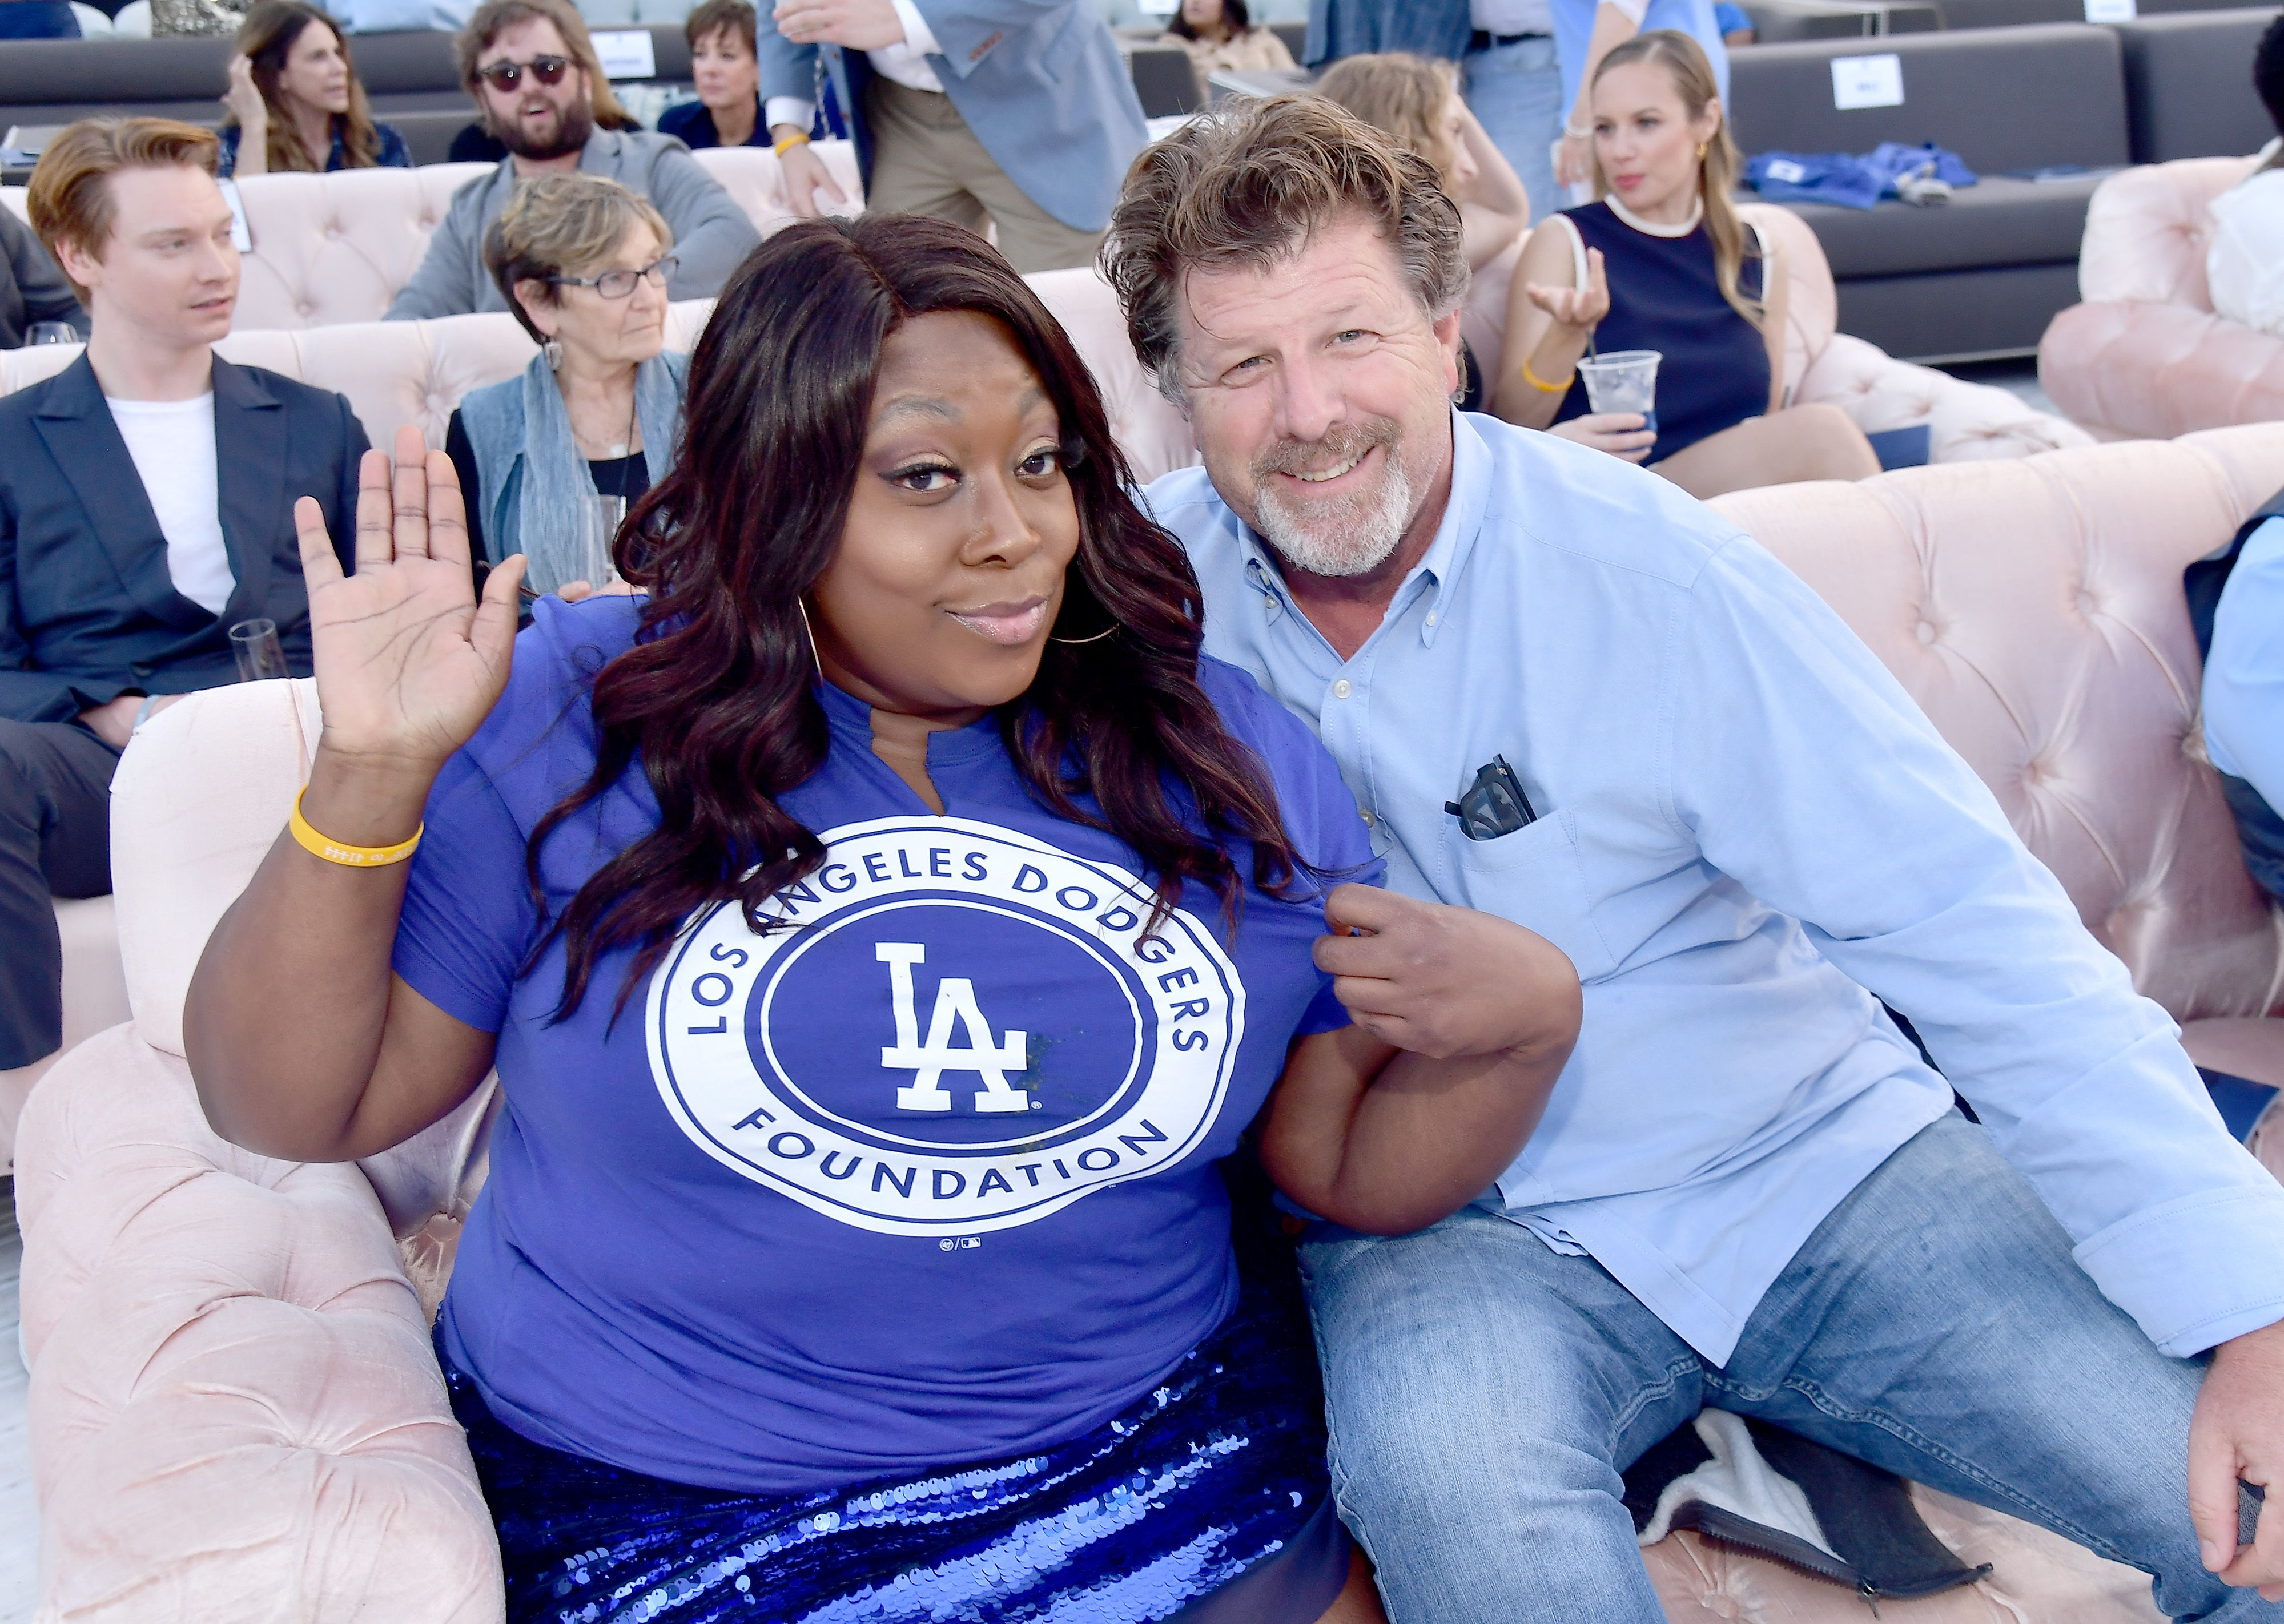 Loni Love and James Welsh during an LA Dodgers Foundation charity event on June 12, 2019 in Los Angeles, California. | Source: Getty Images